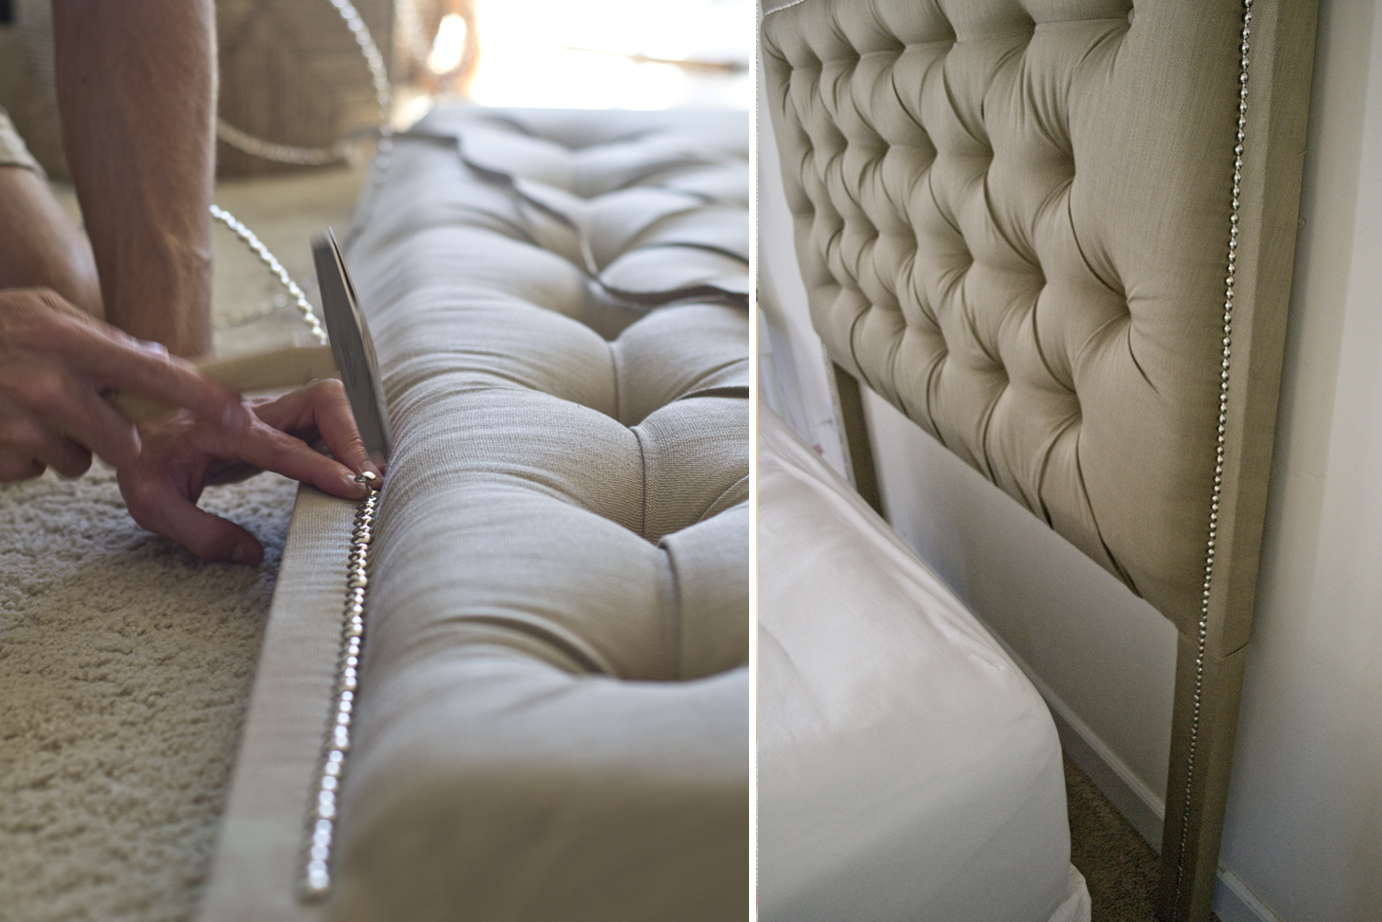 Tufted headboard with nailhead how to dorsey designs solutioingenieria